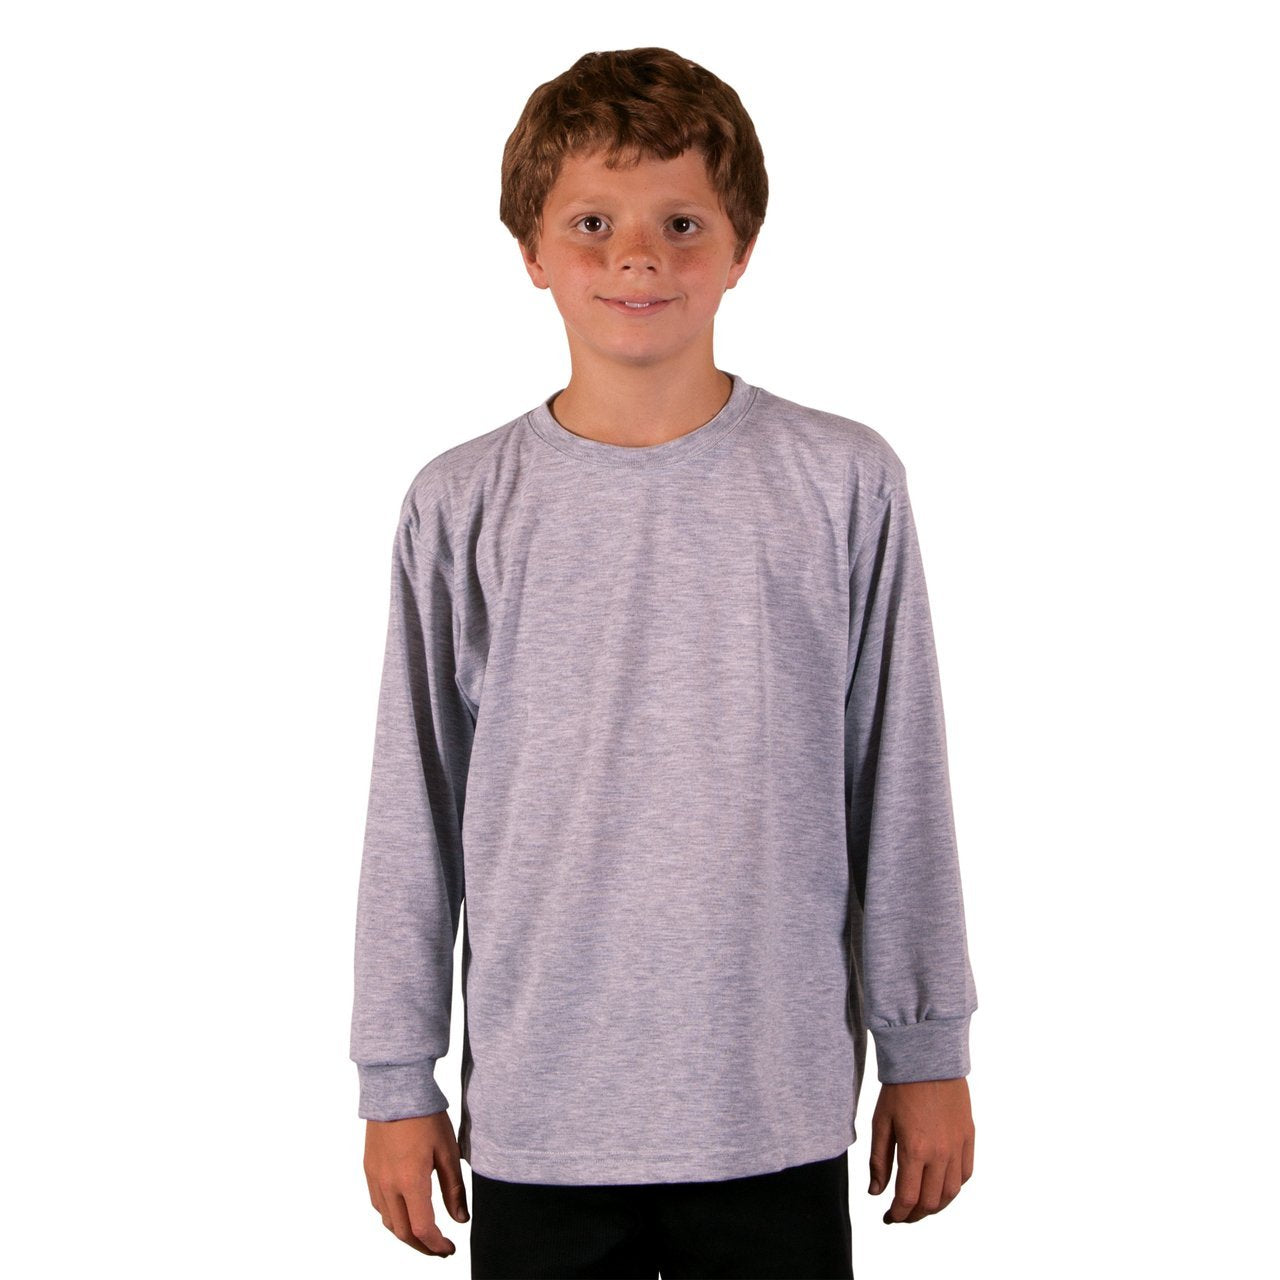 A3SJBLAH Youth Basic Performance Long Sleeve T-Shirt - Ash Heather